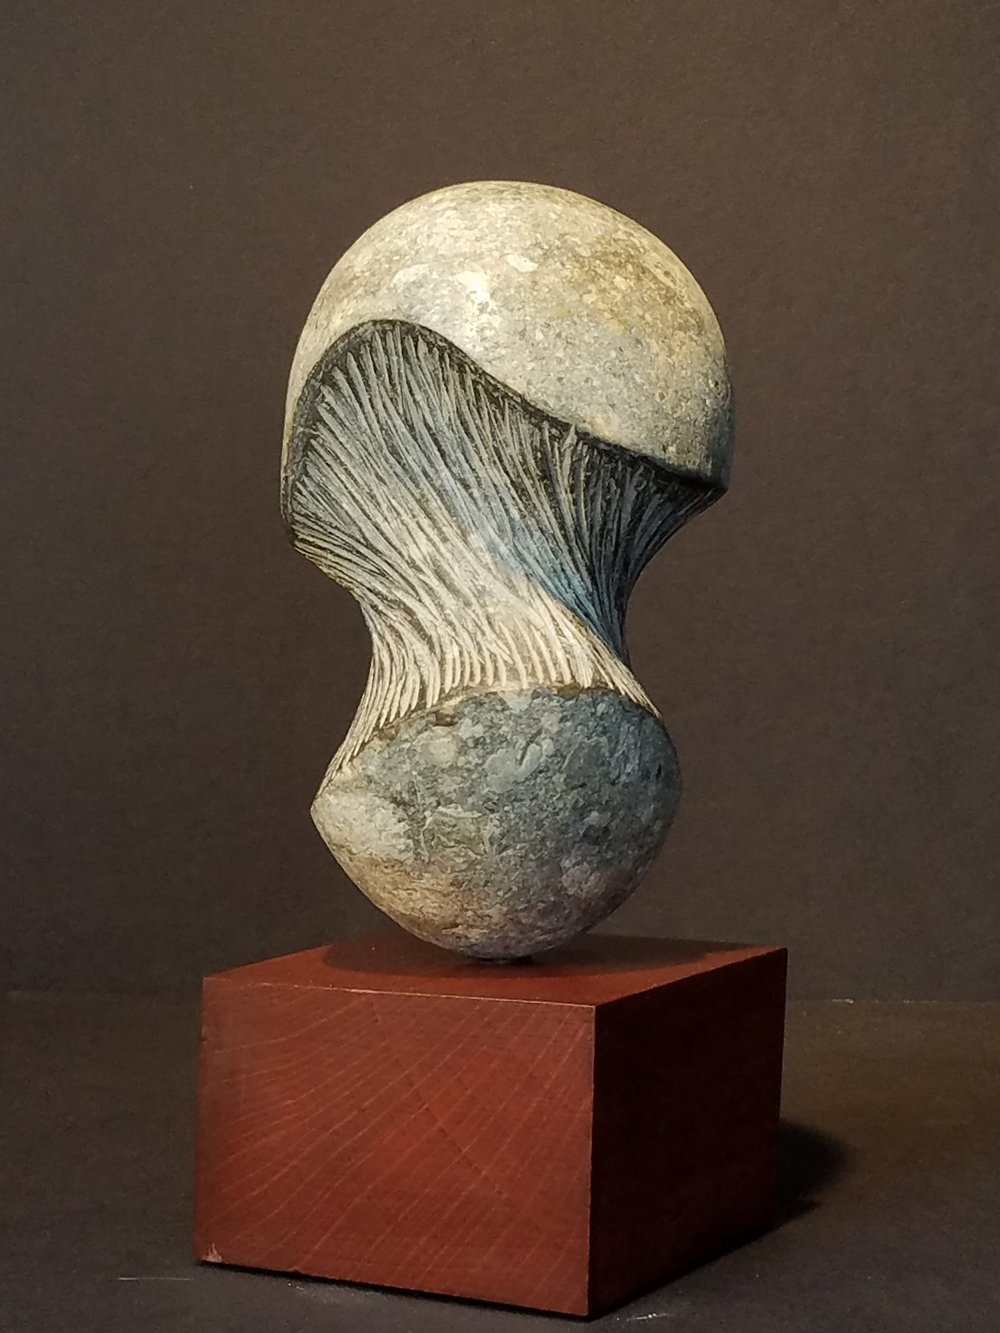 "This is from a series of works using stones found on the beach.  This piece was inspired by the existence and disappearance of the high-tech bubble at Silicon Valley in 2000.  It's an attempt to show the tension just before it bursts.  Medium: Granite on Wooden Base  Dimensions: 4-1/2"" x 4-1/2"" x 10"""